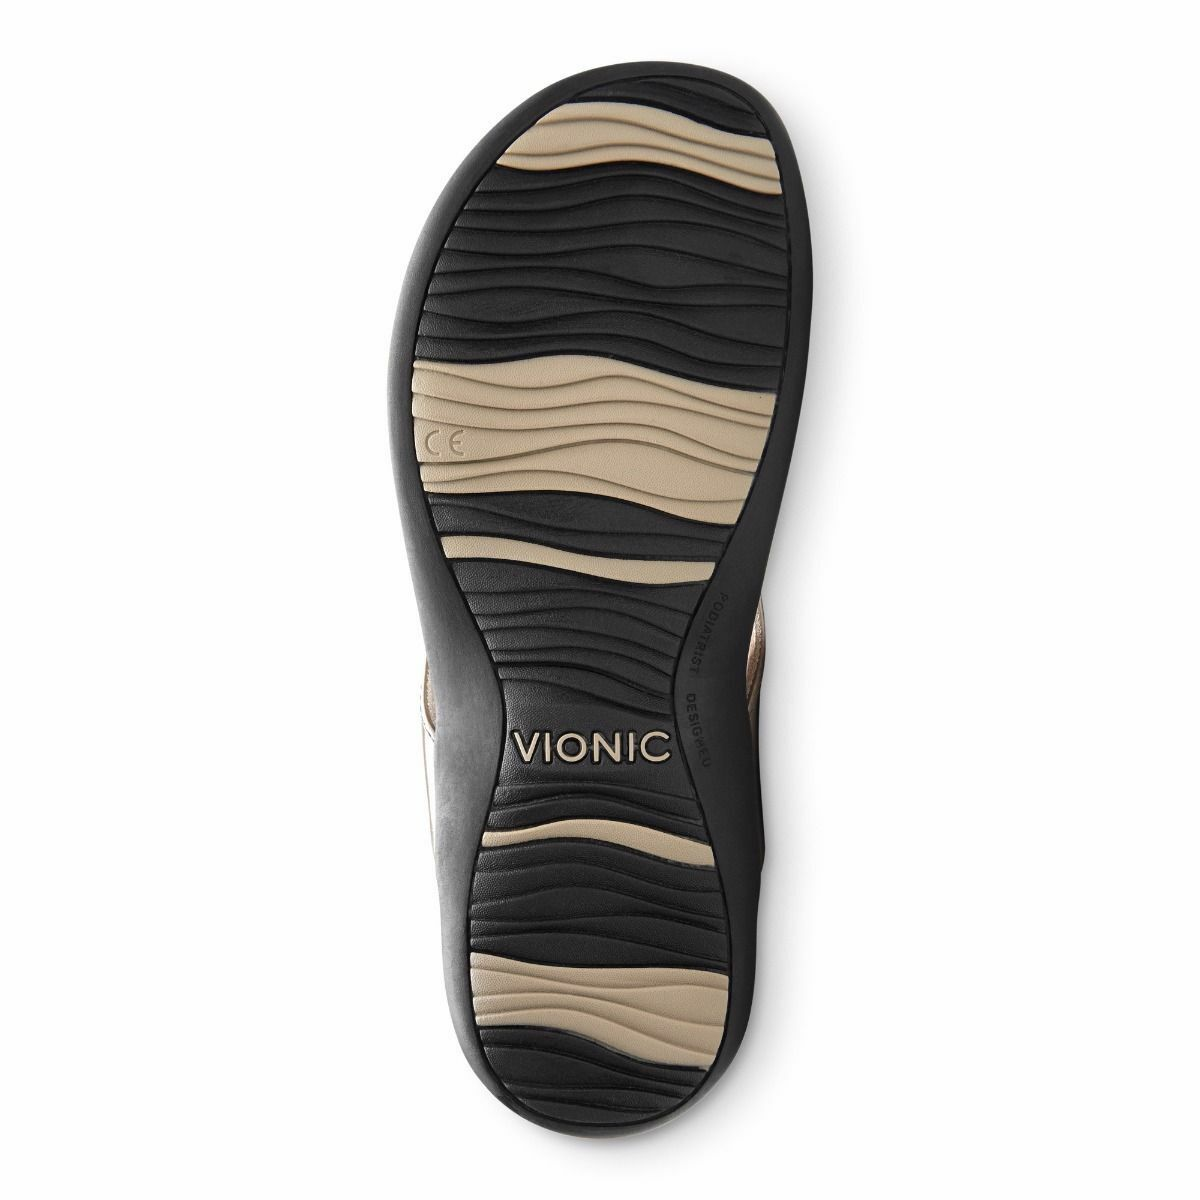 Vionic Orthotic Rest Bella - Casual Thongs Sandales - Bella Pewter bf6e1e